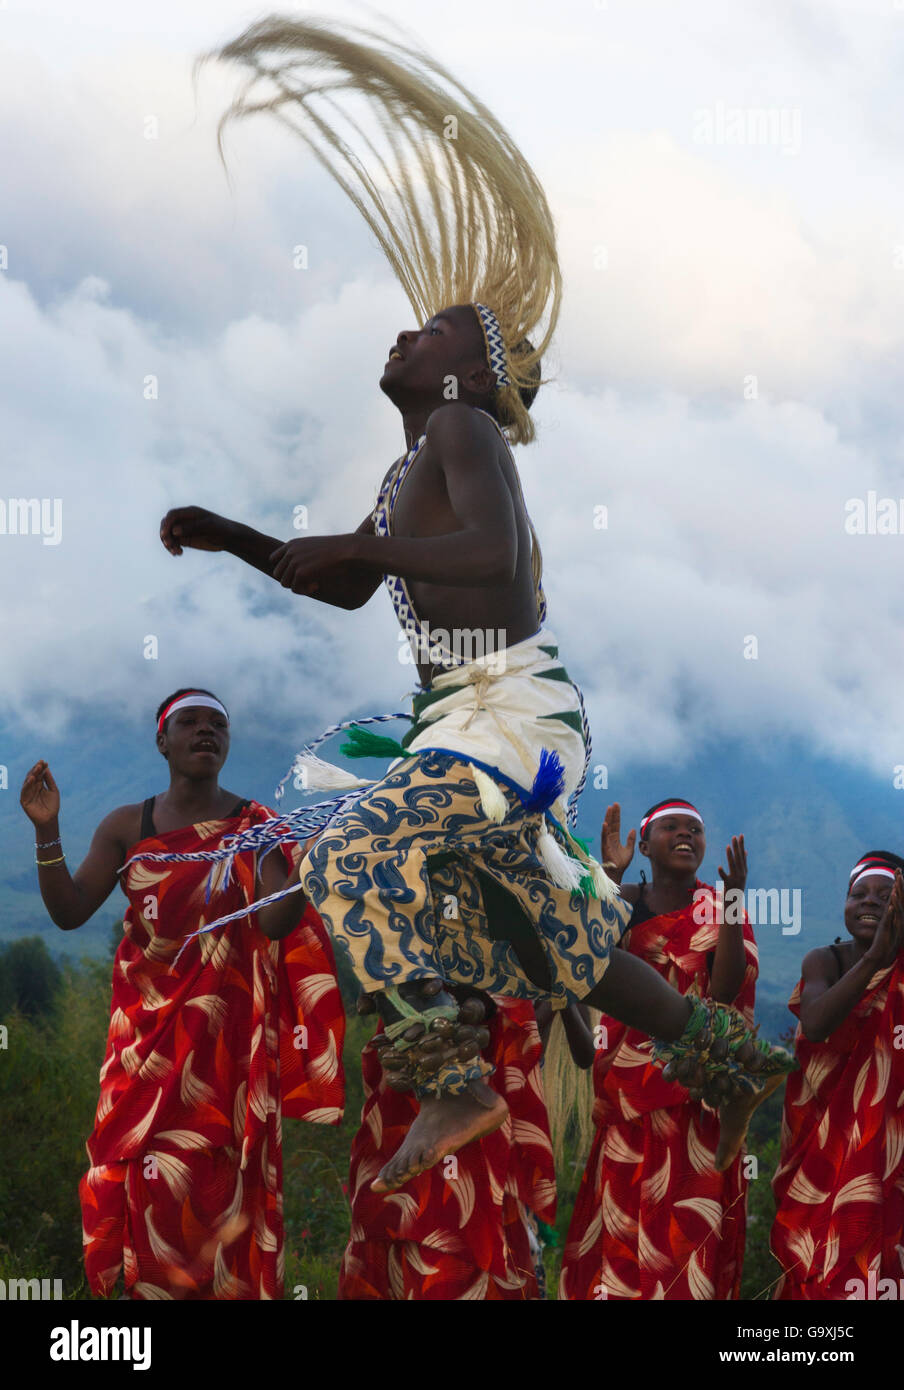 Local Intore dancer with straw headdress. Volcanoes National Park, Virungas,  Rwanda. February 2012. - Stock Image